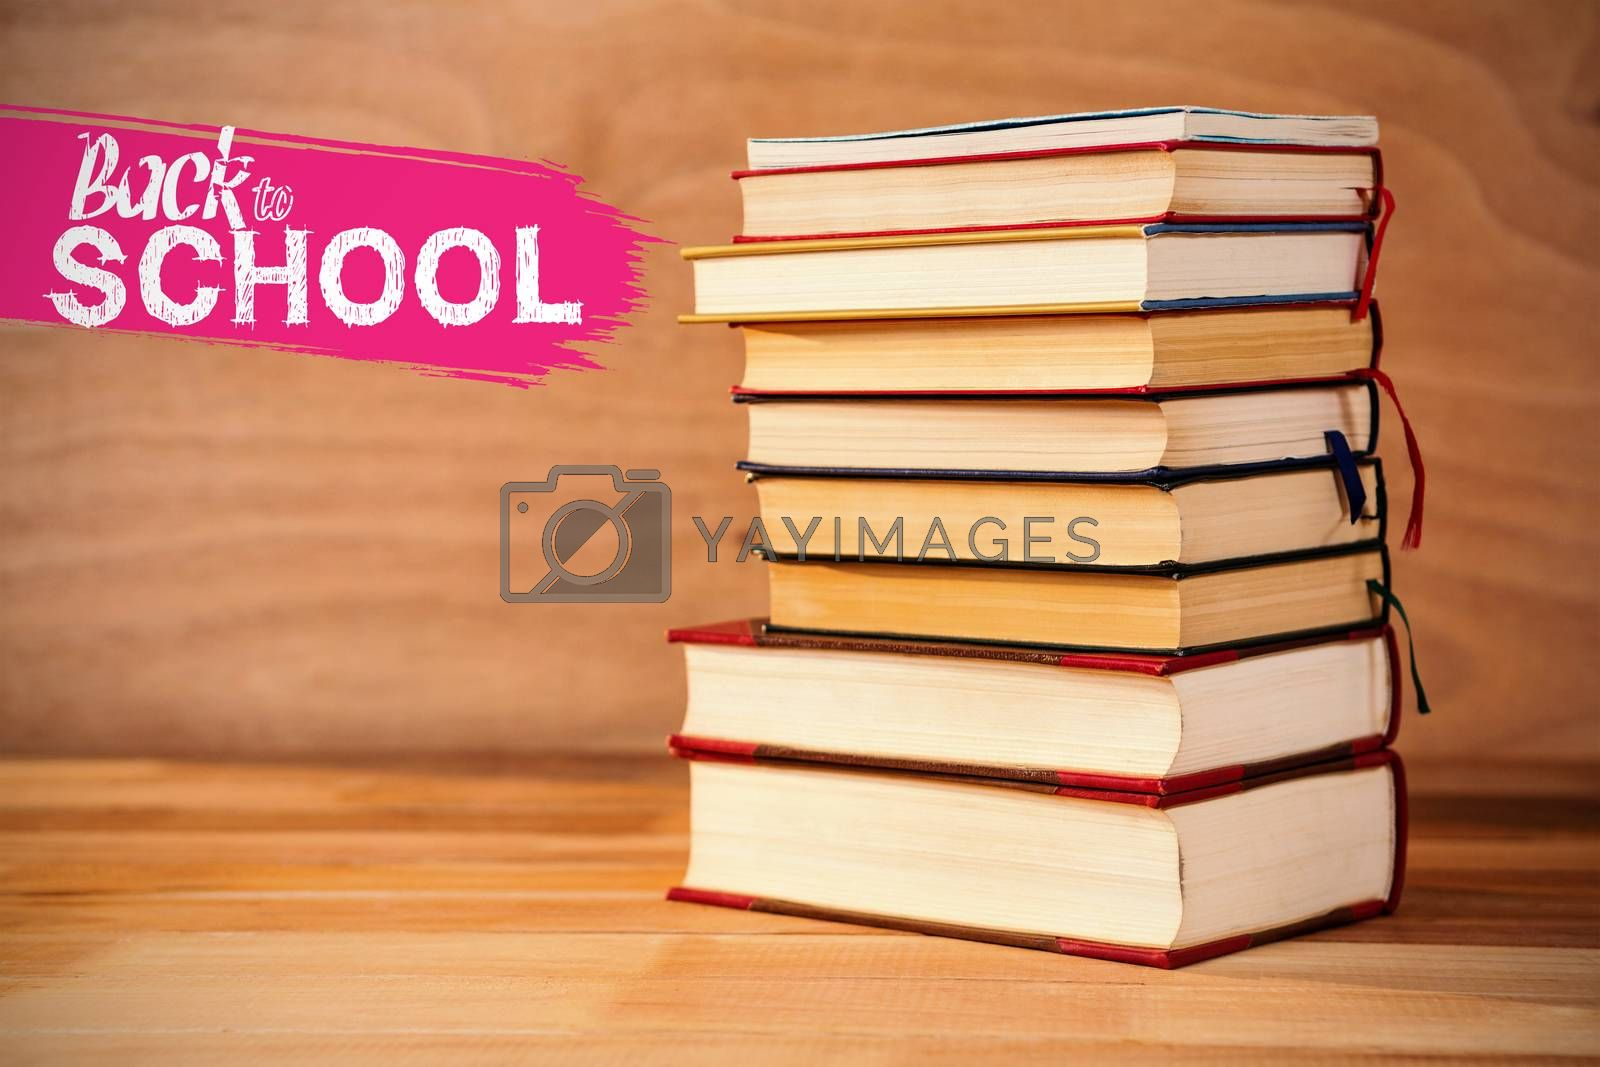 back to school against hardcover books stack on table